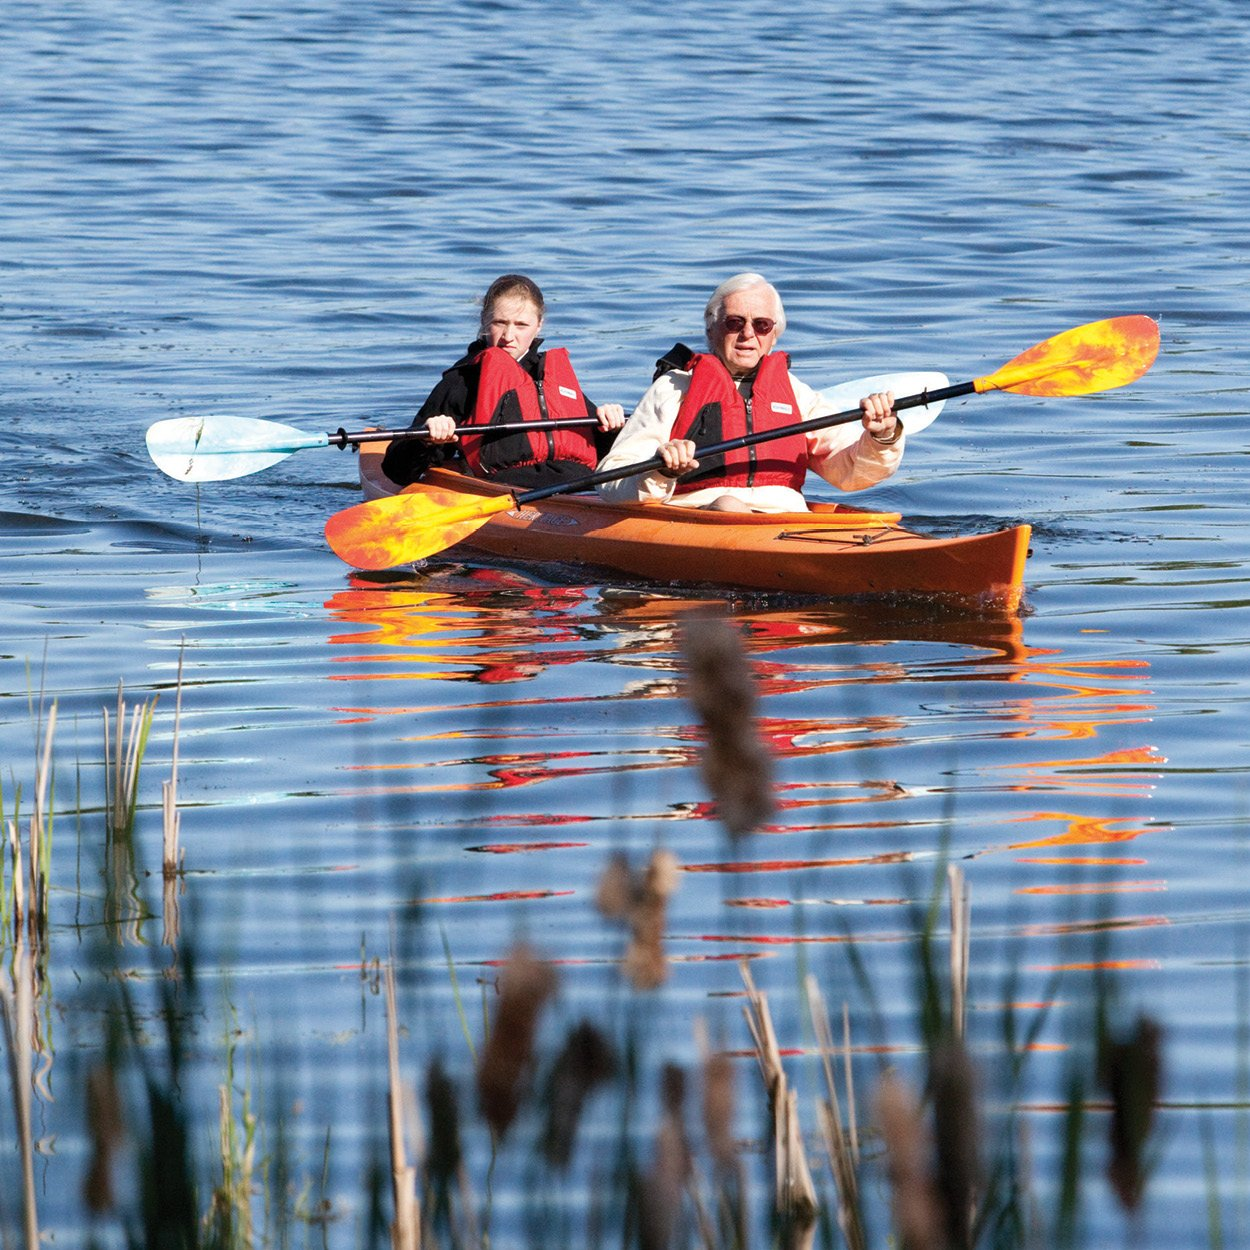 Two people in a kayak on a lake